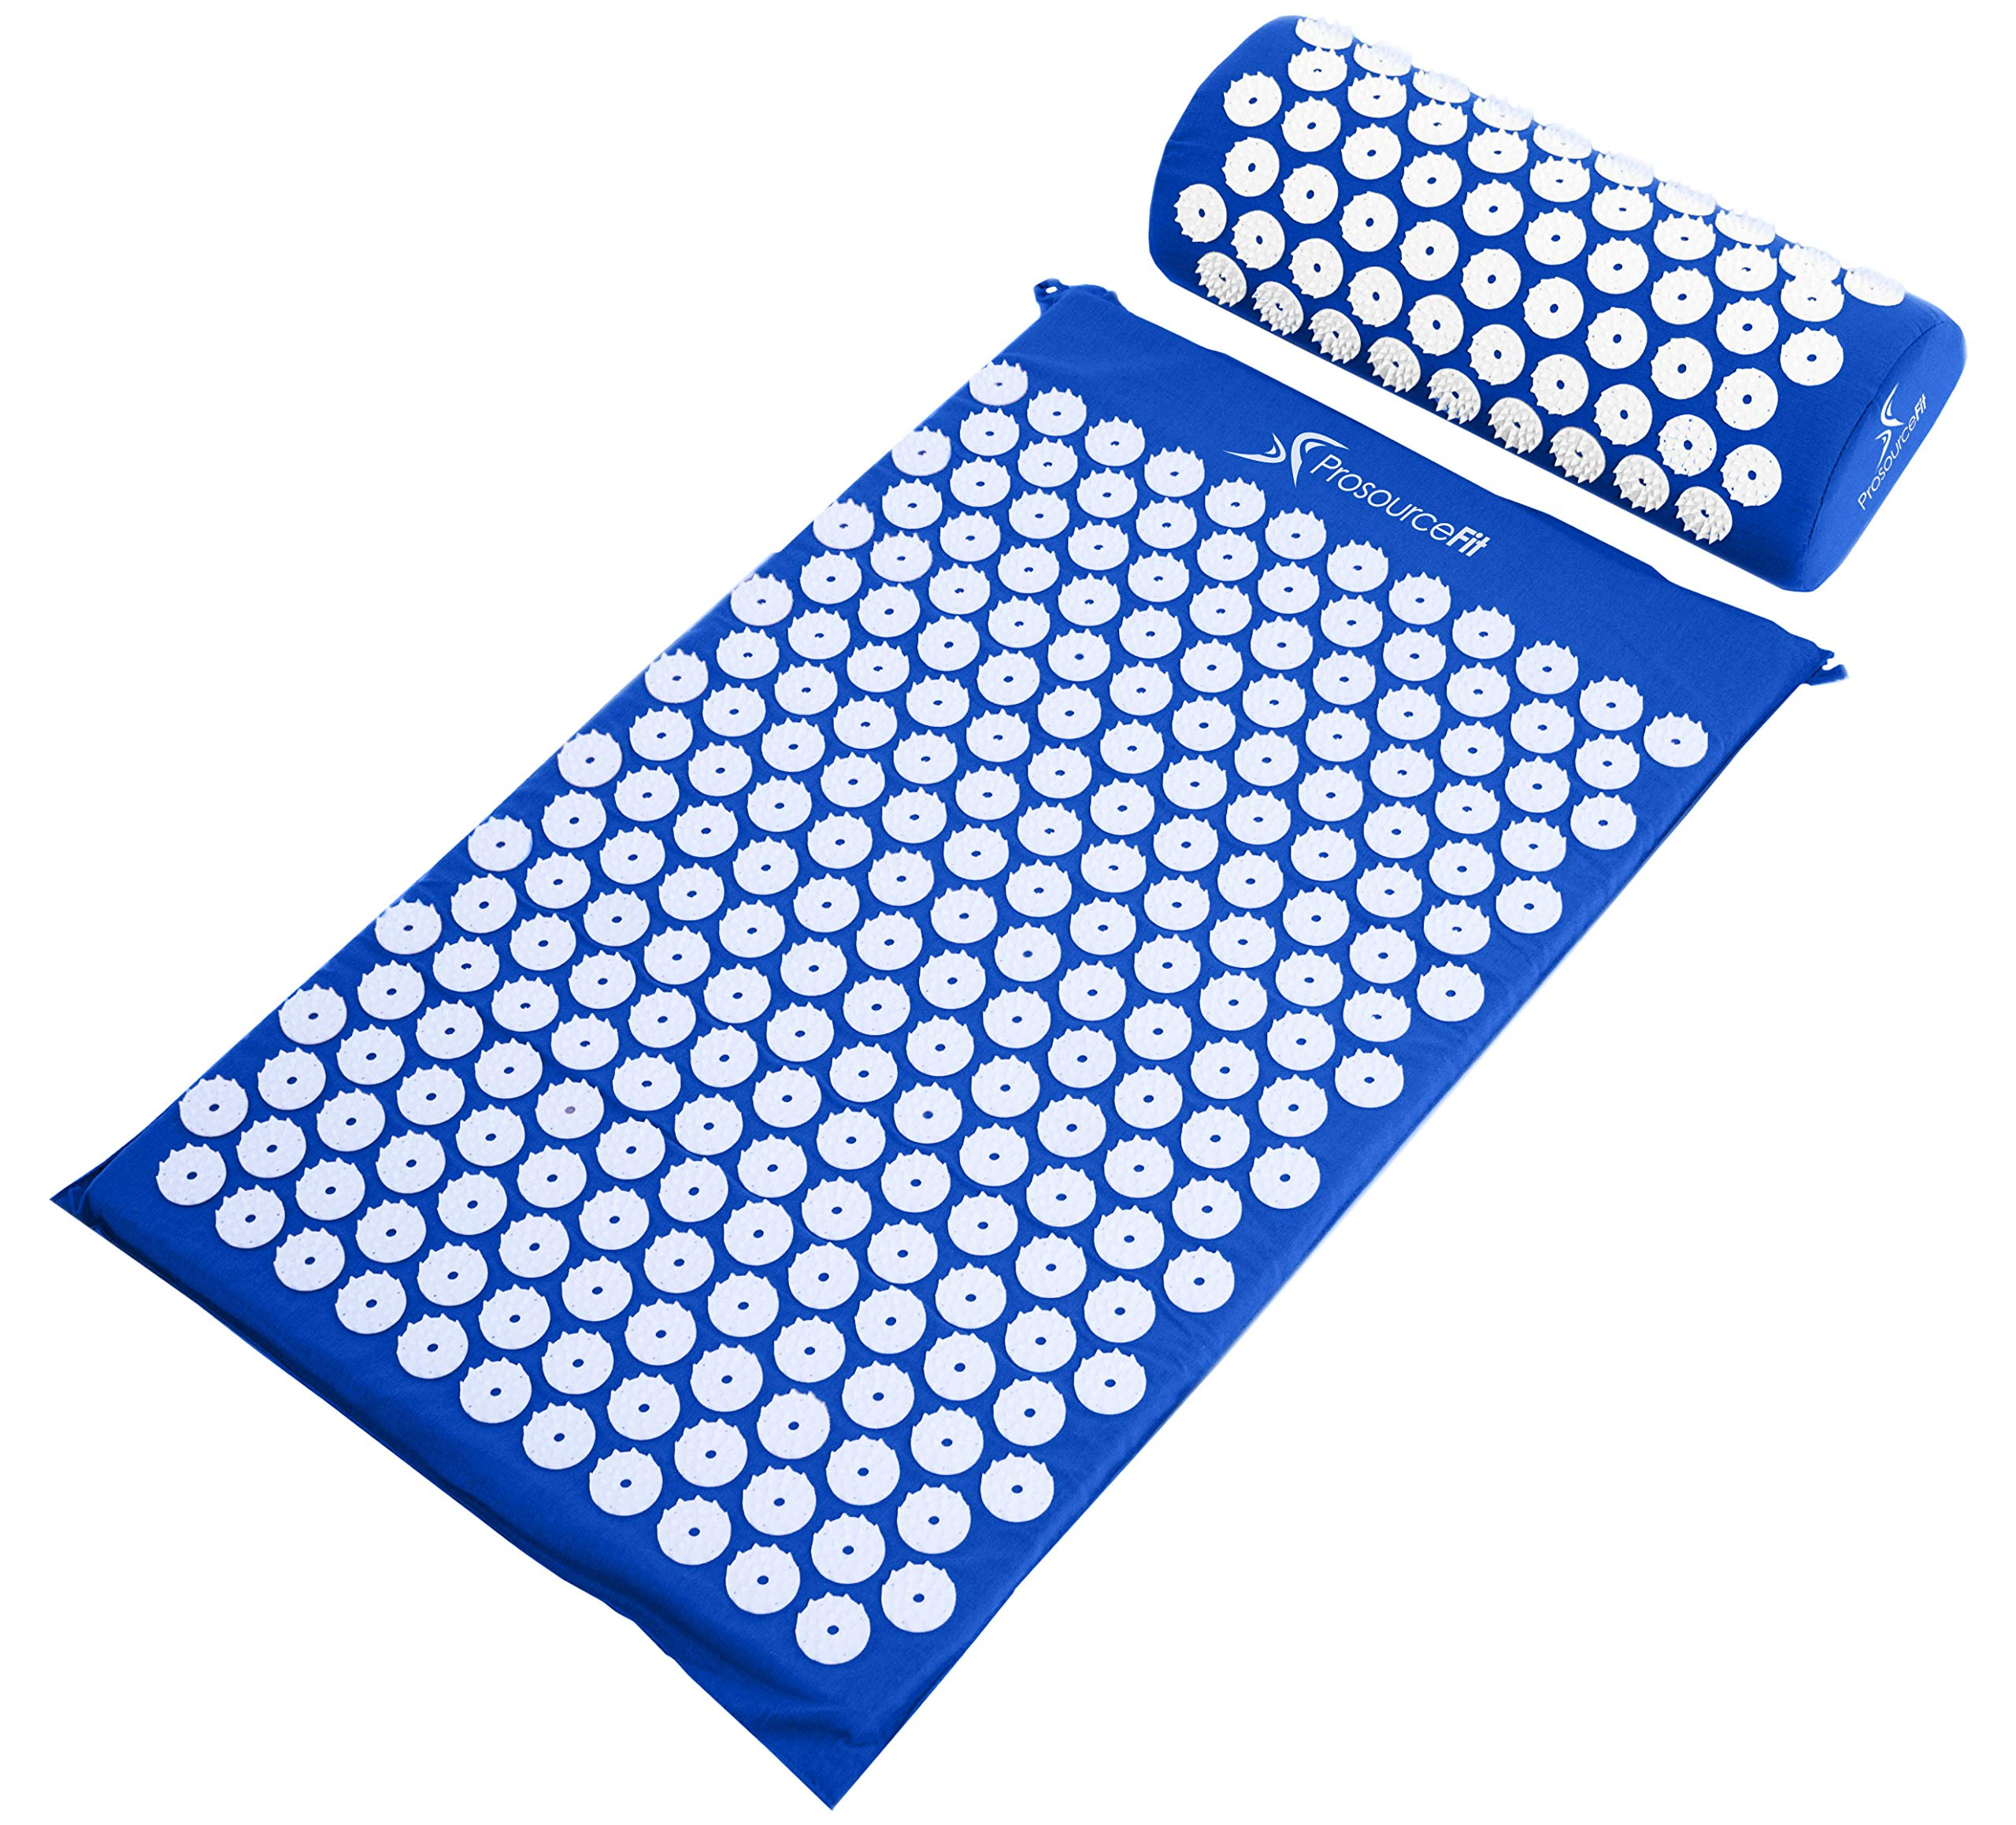 ProSource Acupressure Mat and Pillow Set for Back/Neck Pain Relief and Muscle Relaxation, Blue by ProSource